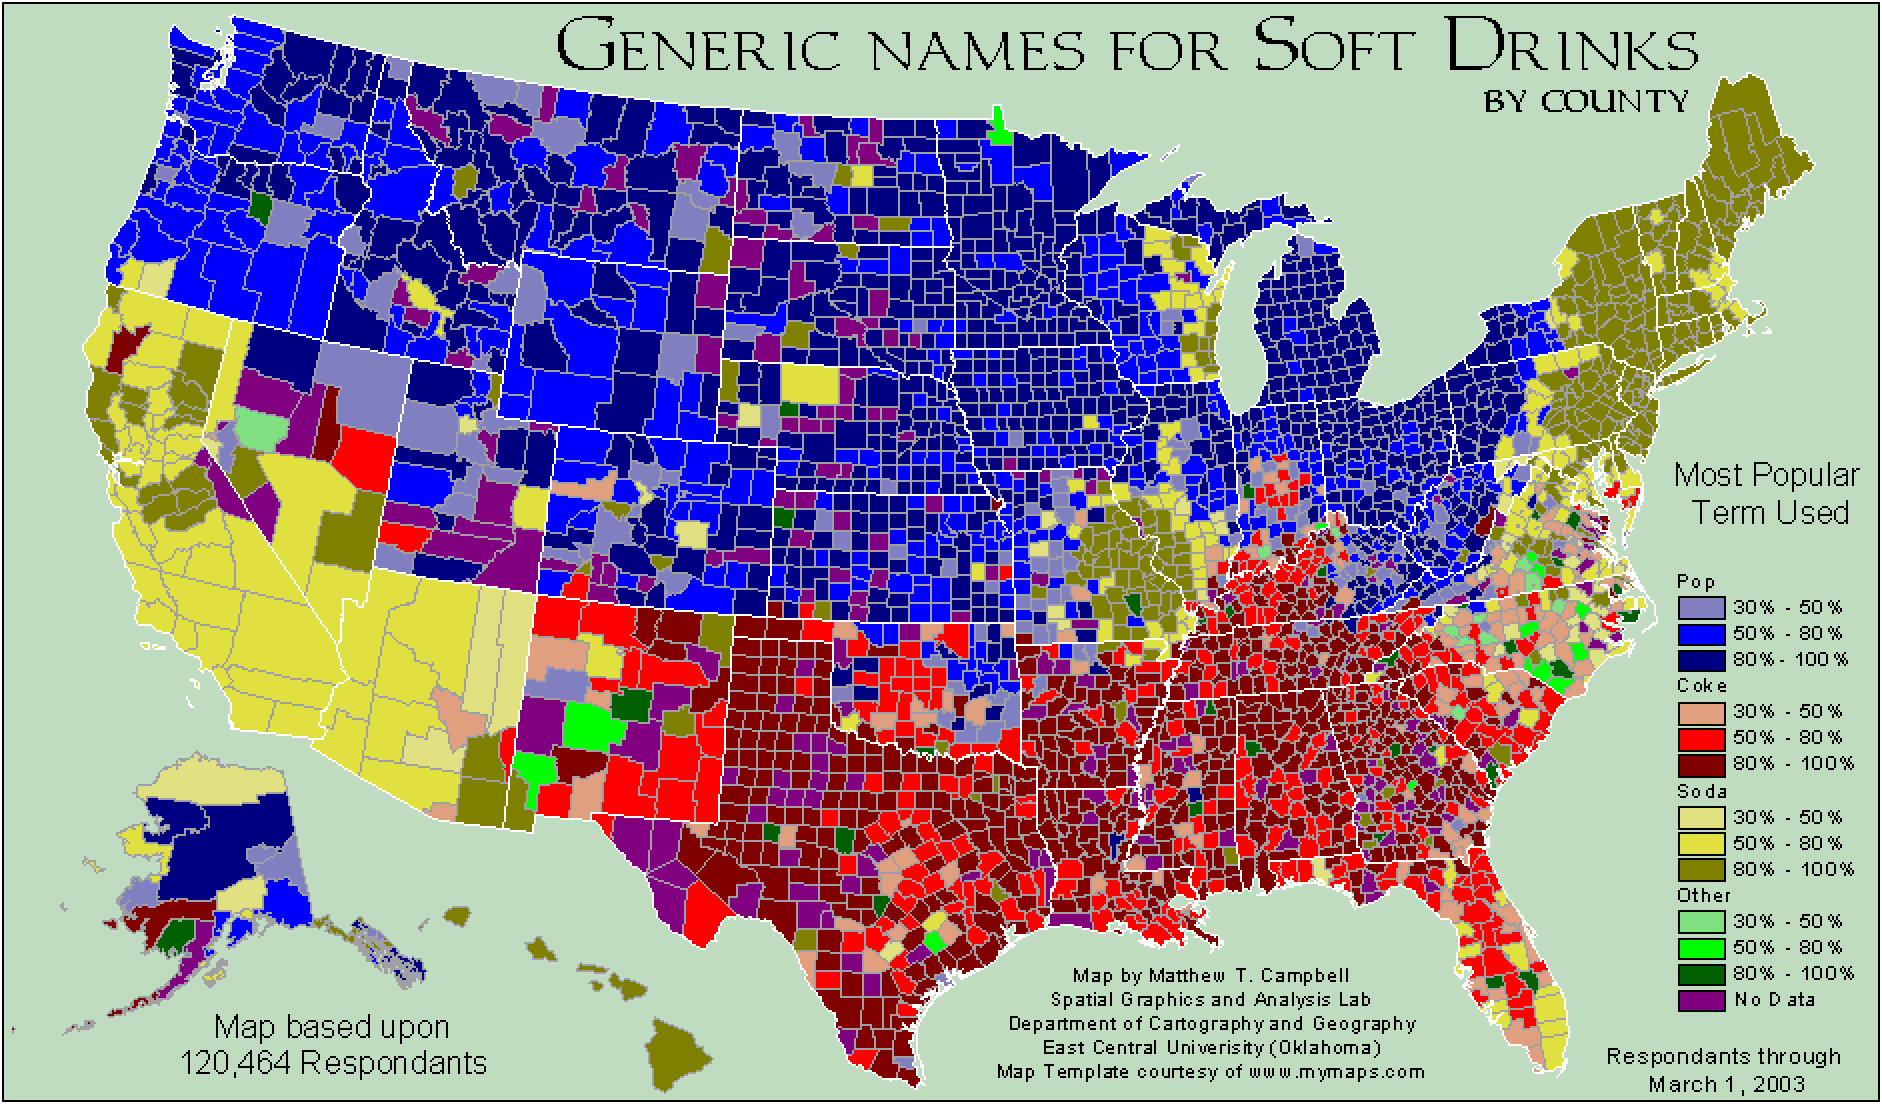 Generic Soda Names By County - Click To View Image